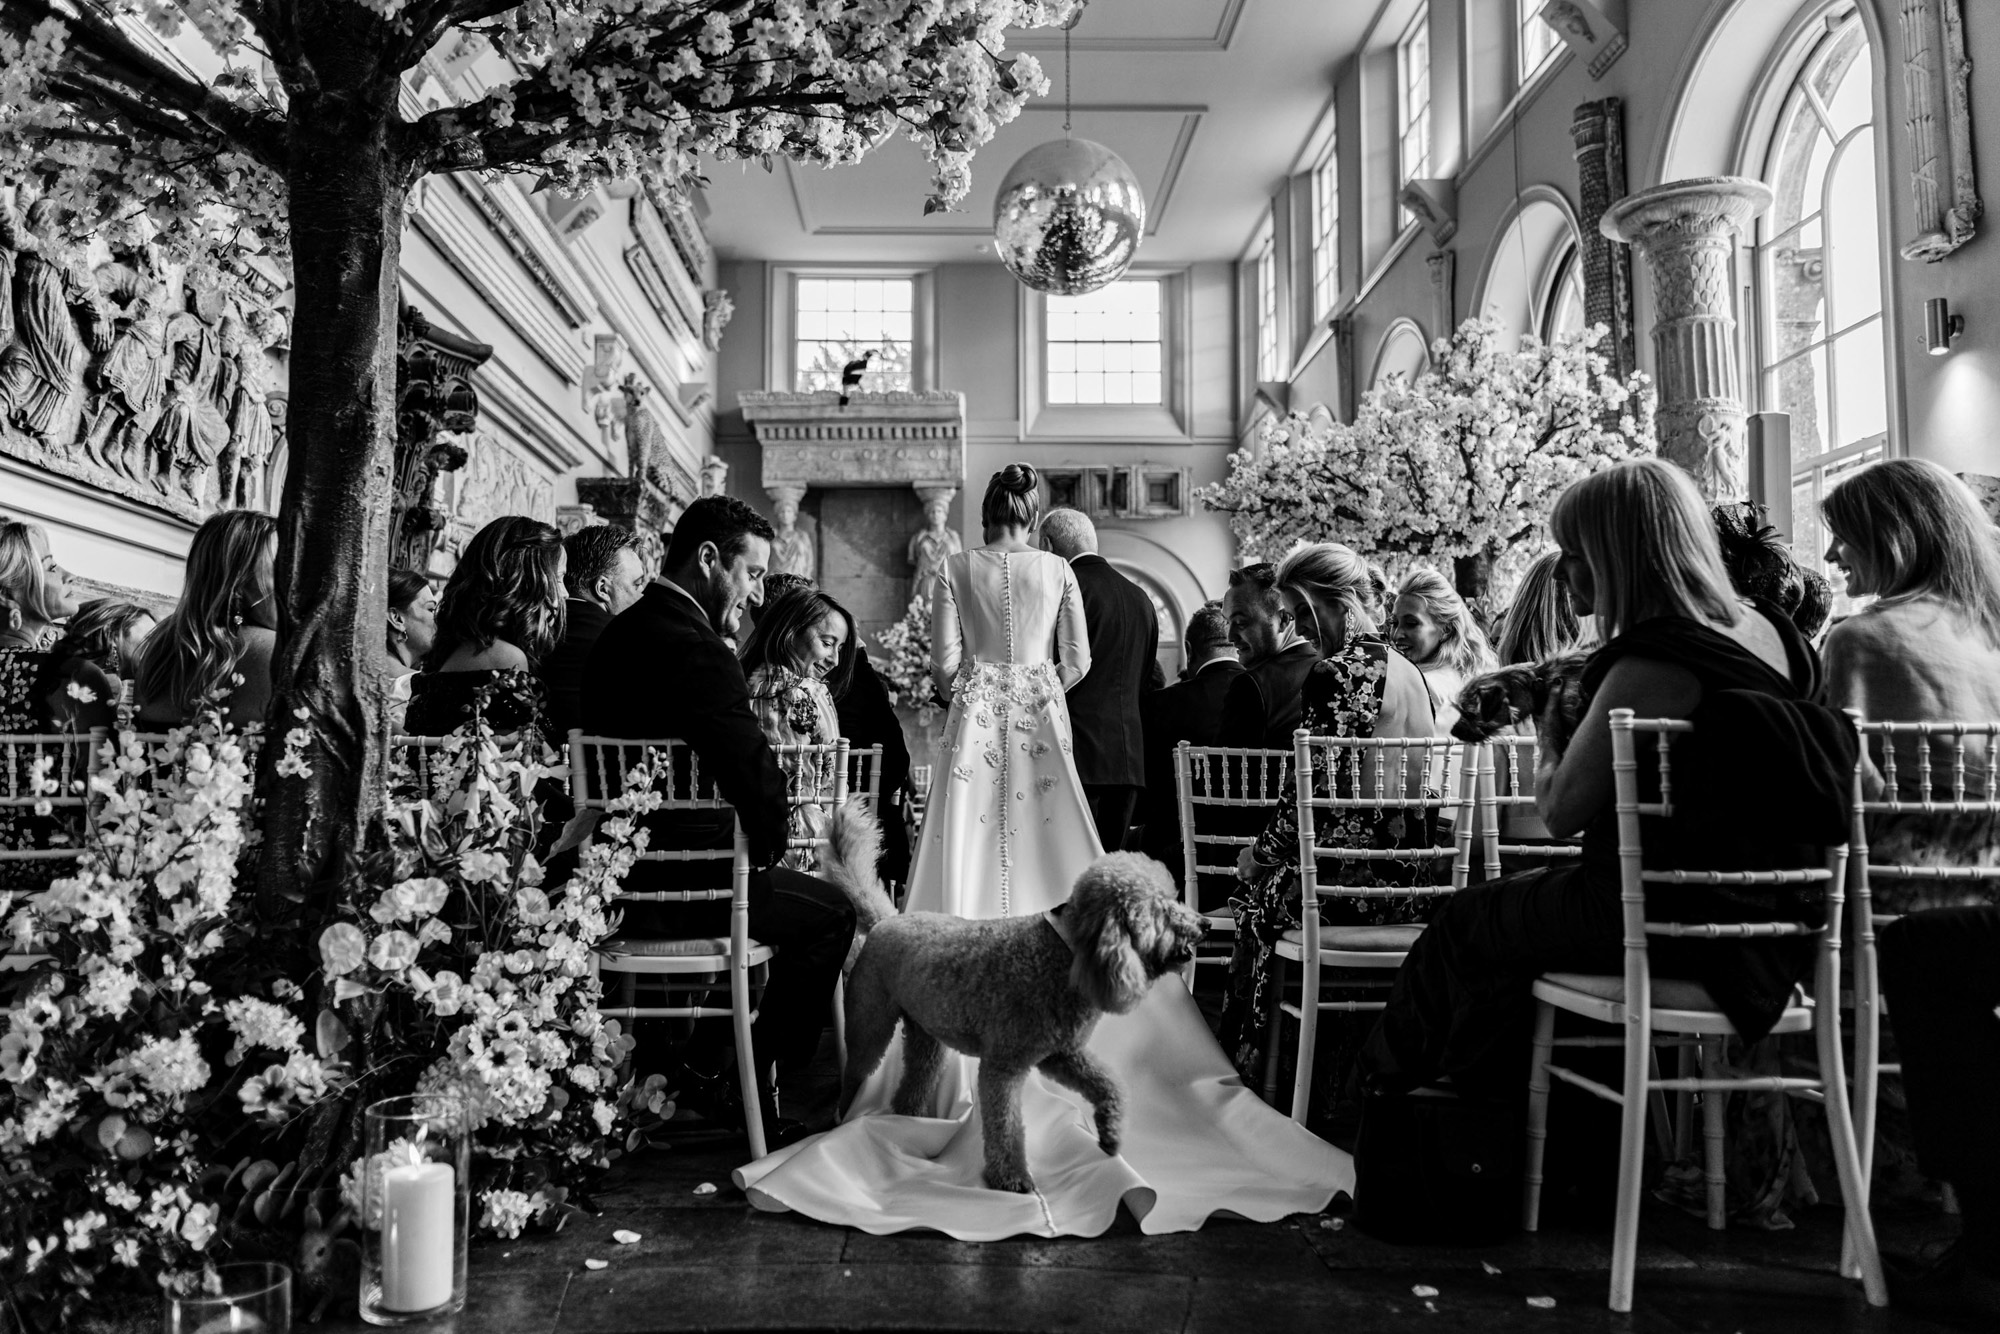 black and White wedding photography-23.jpg